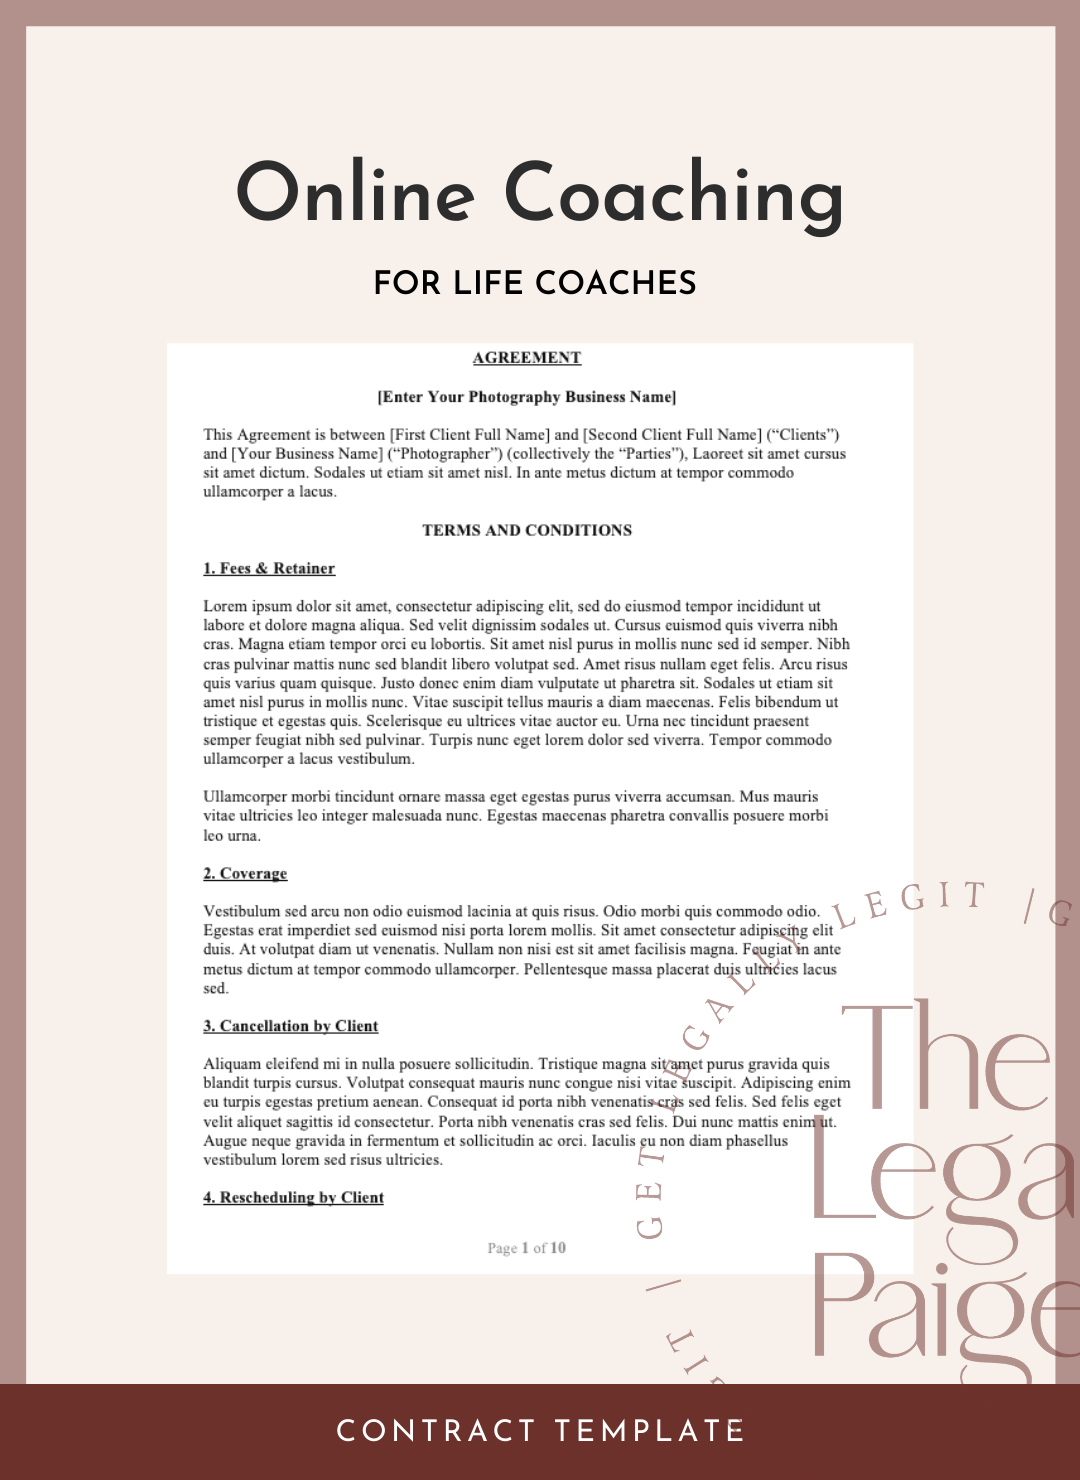 Online Coaching Contract for Life Coaches